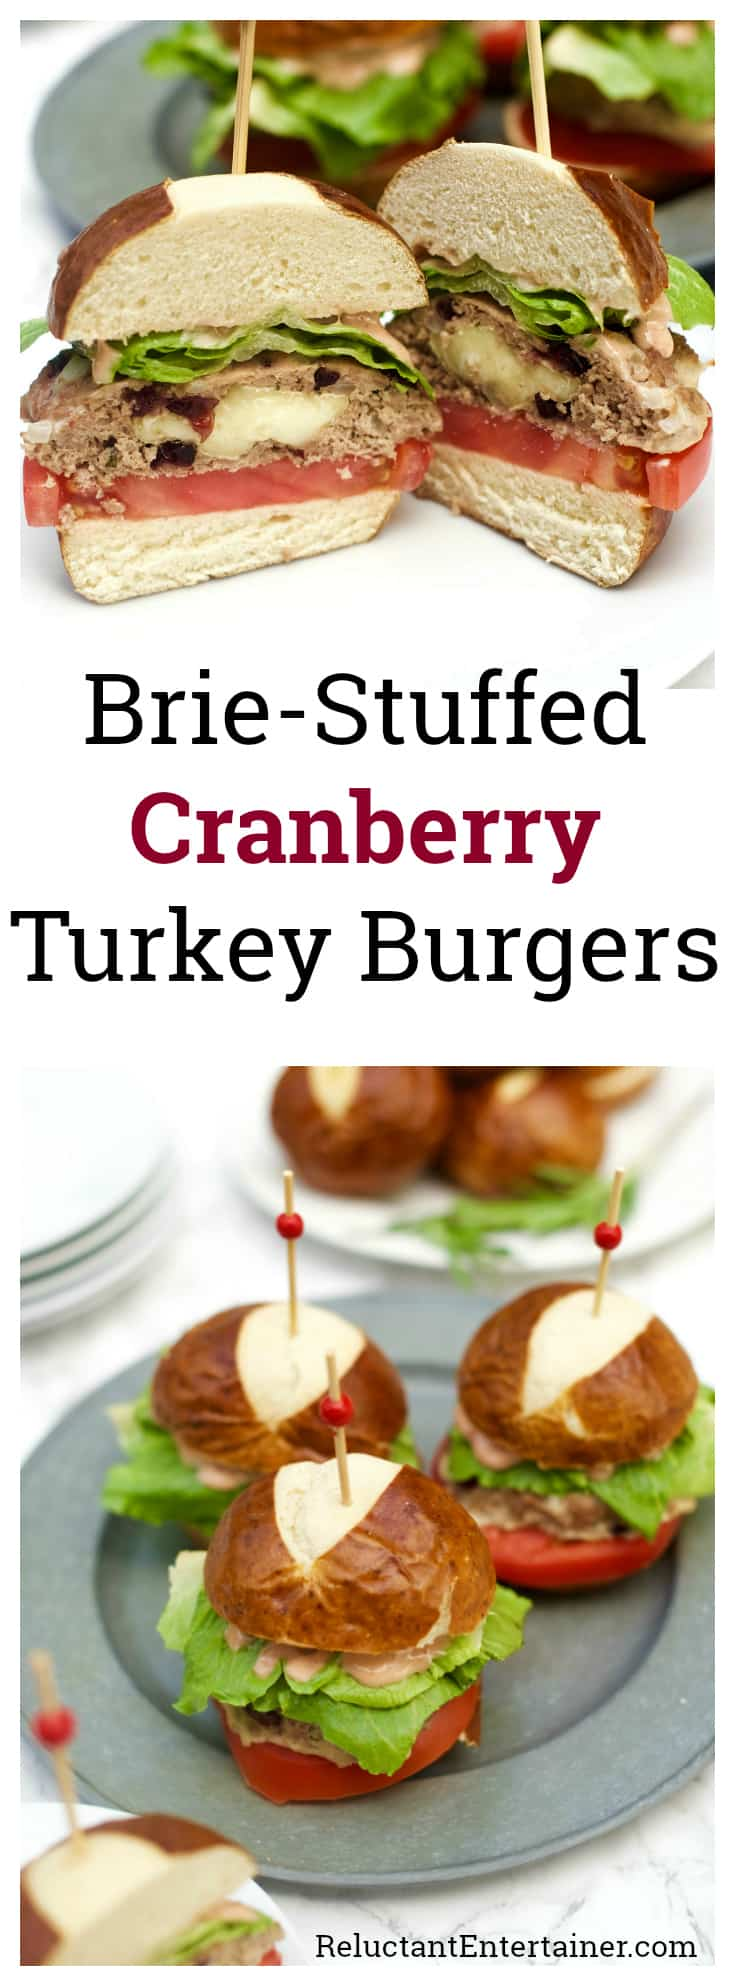 Brie-Stuffed Cranberry Turkey Burgers